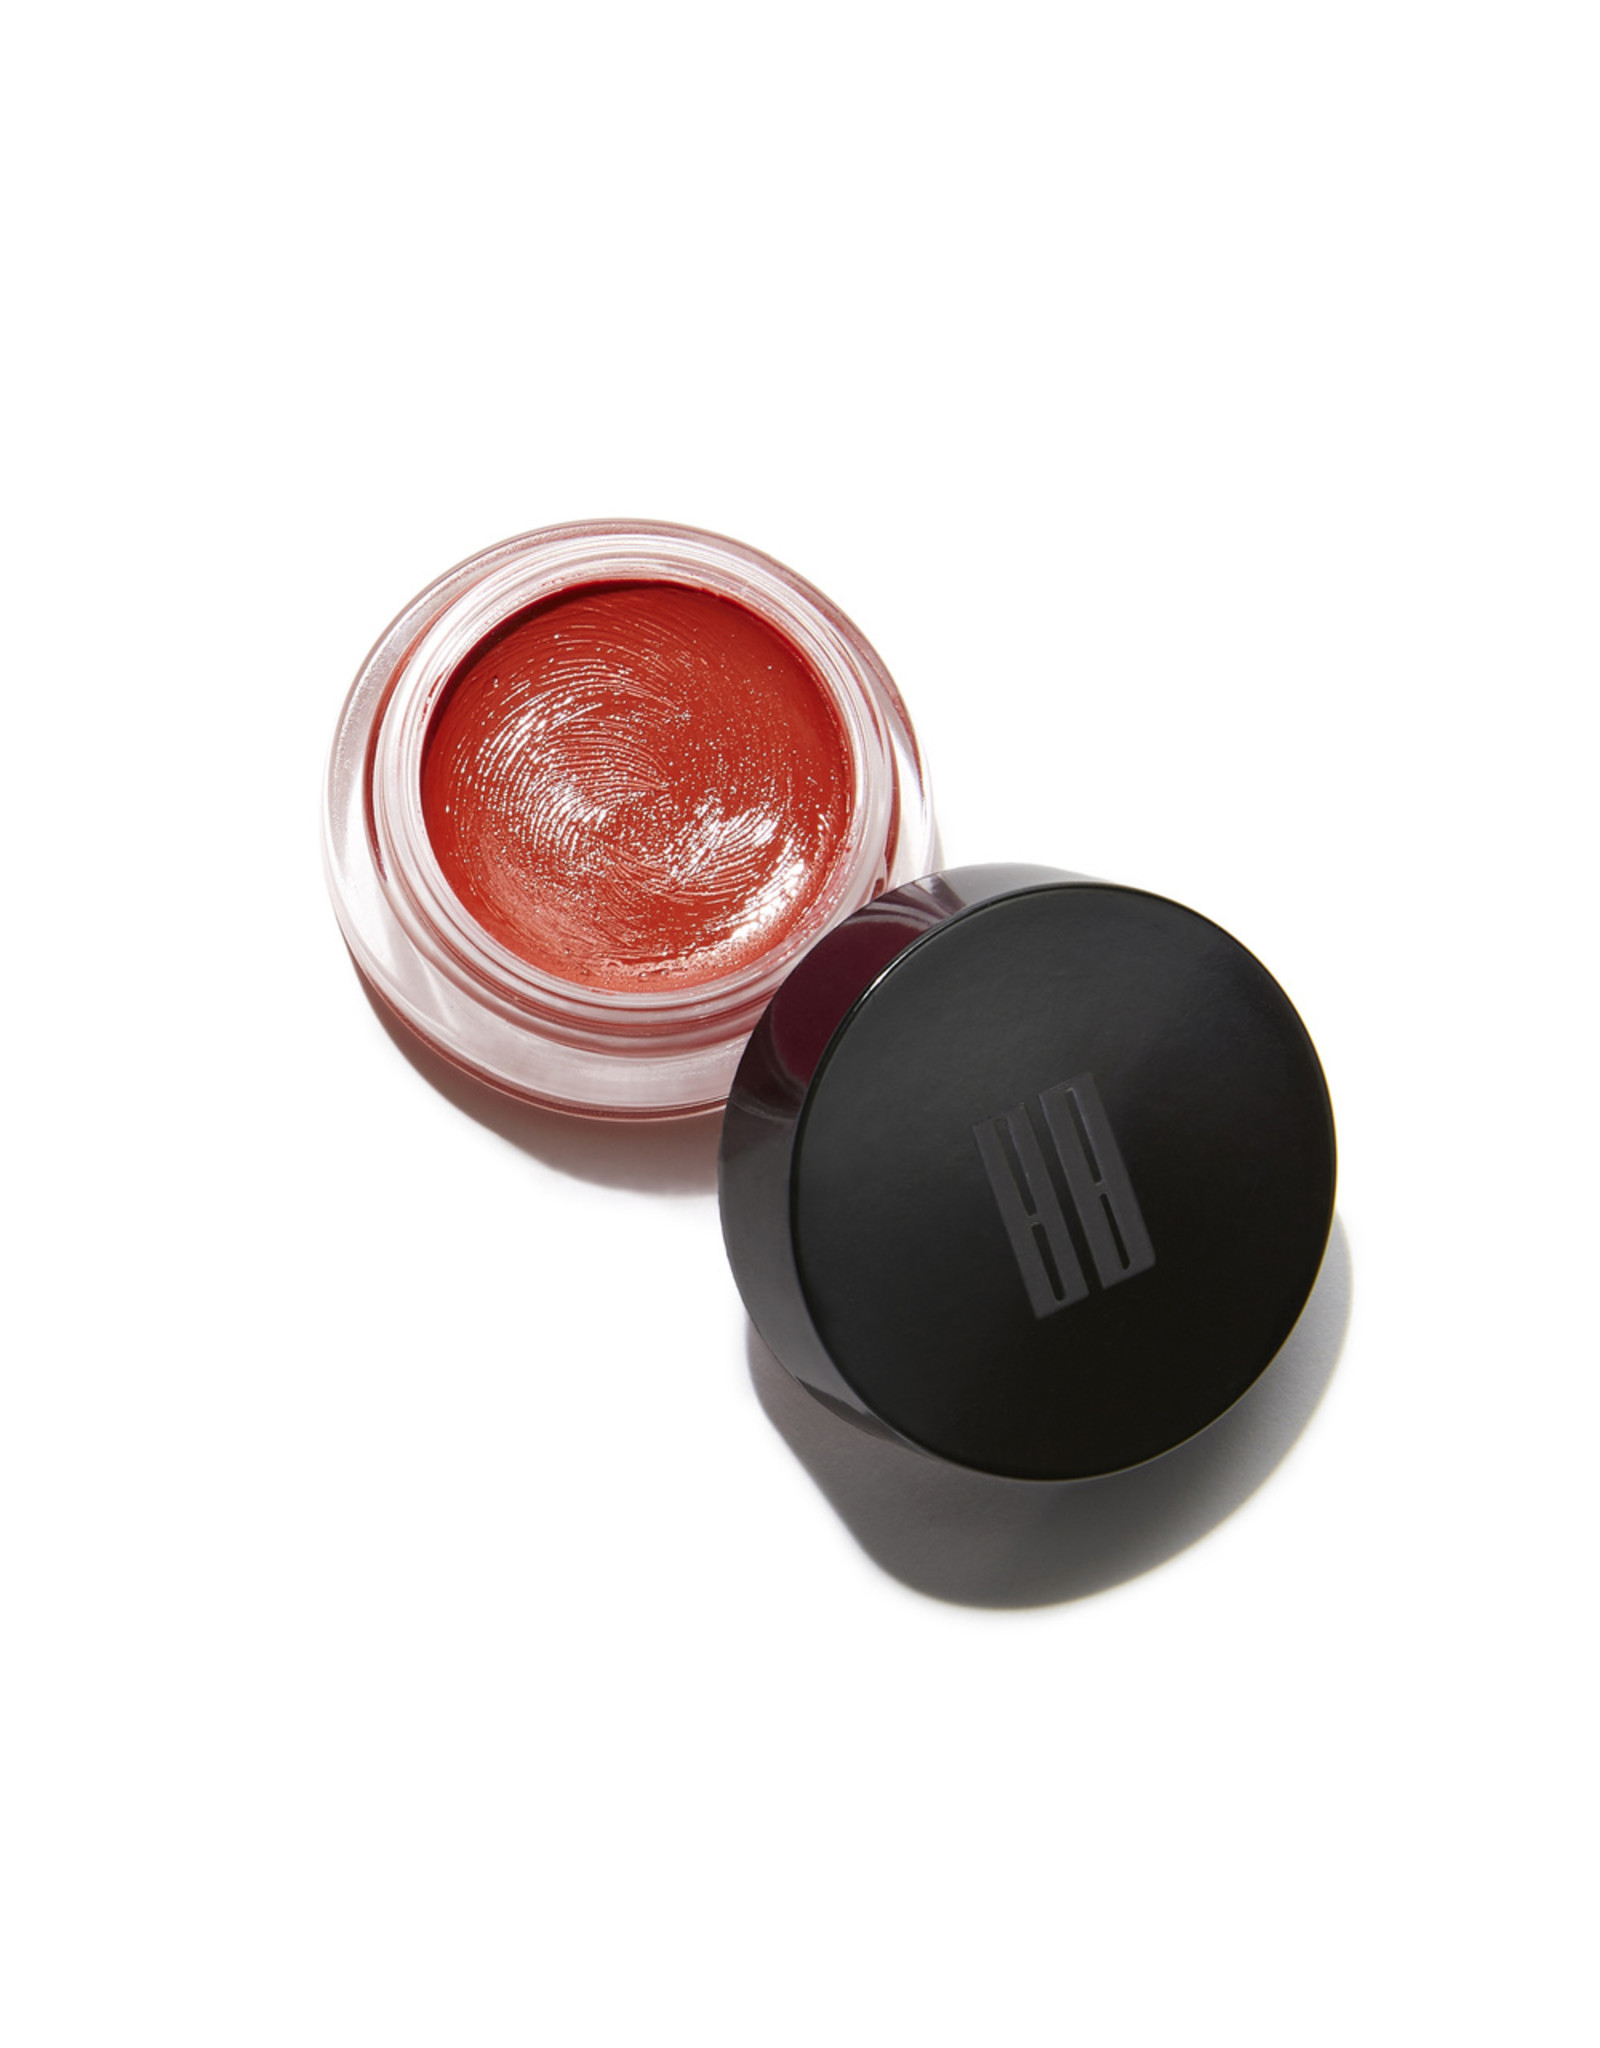 Balmyard Beauty Balmyard Beauty Baby Love Balm Lip + Cheek Tint (Color: Cherry Oh)